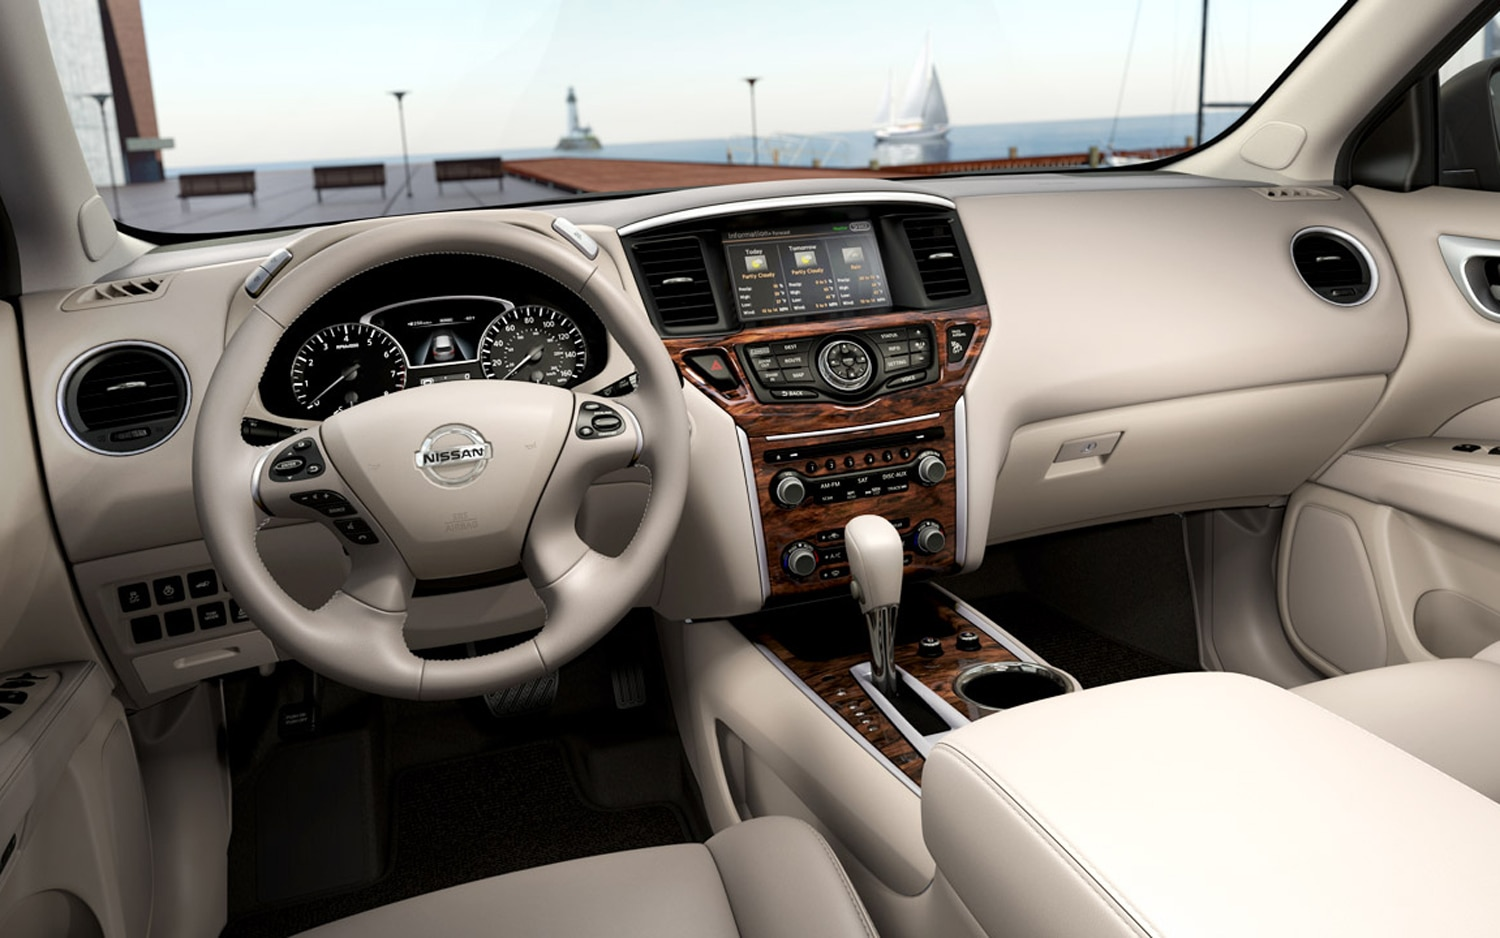 2013 Nissan Pathfinder to Offer Premium Interior and Tech